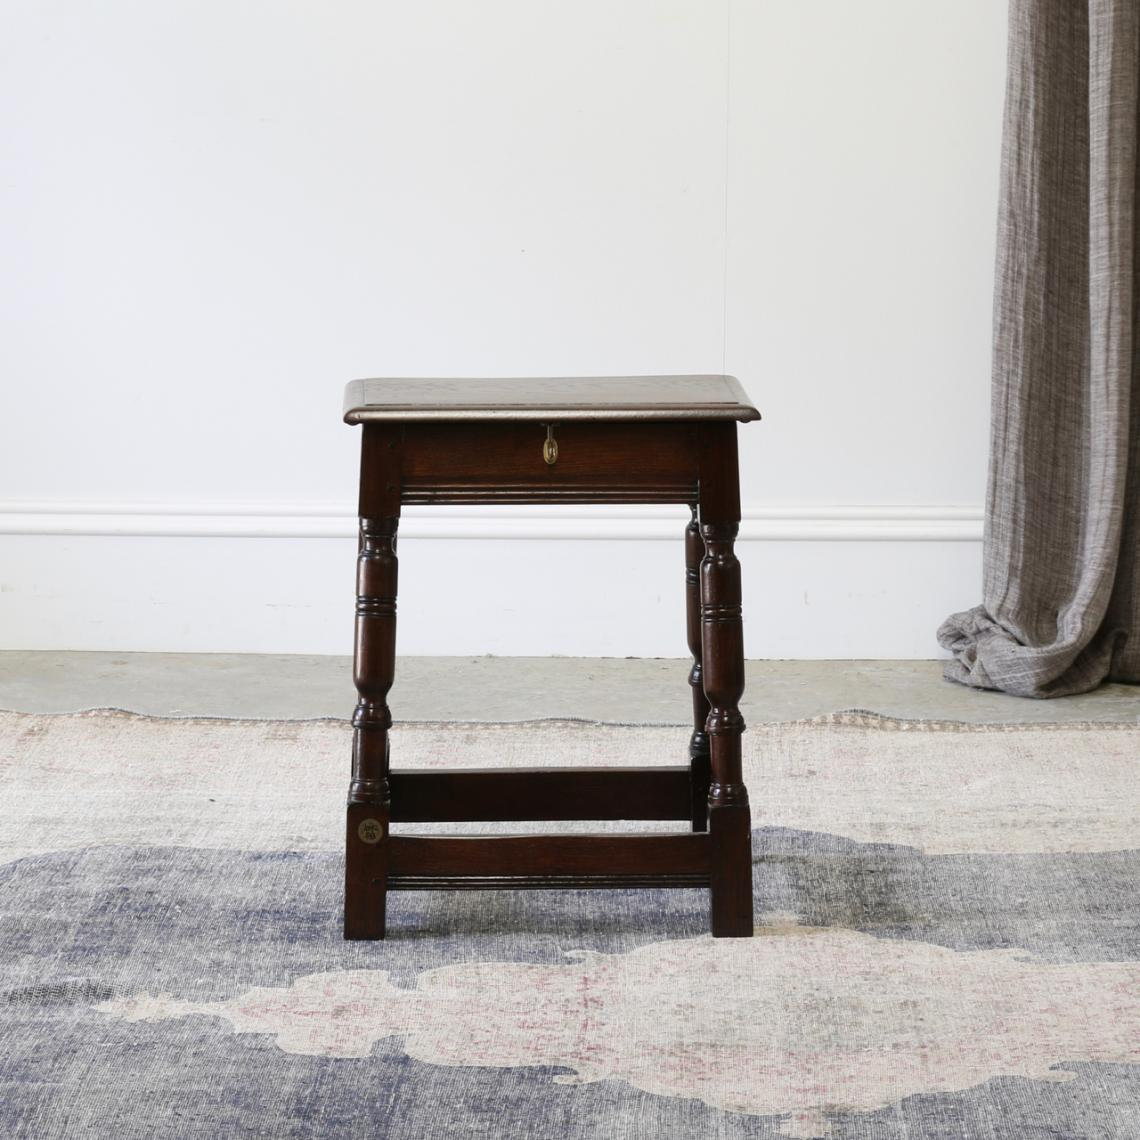 Jointed Stool with Opening Lid